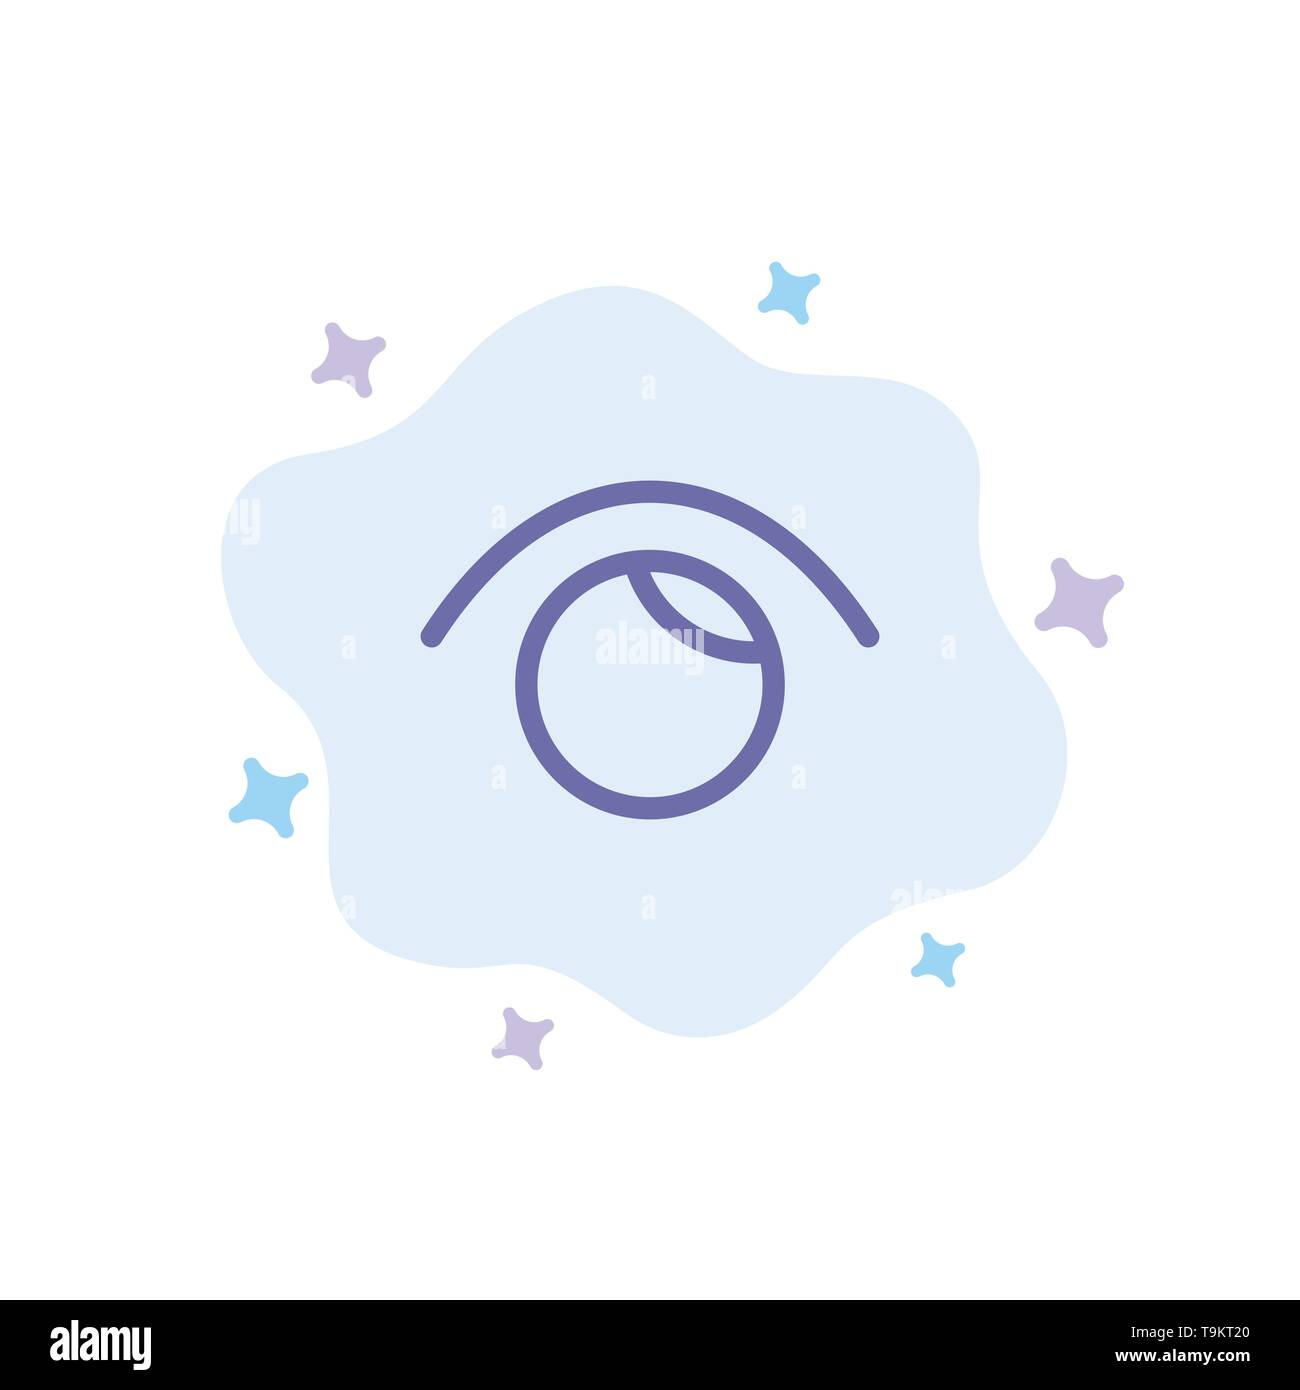 Eye, View, Watch, Twitter Blue Icon on Abstract Cloud Background - Stock Image